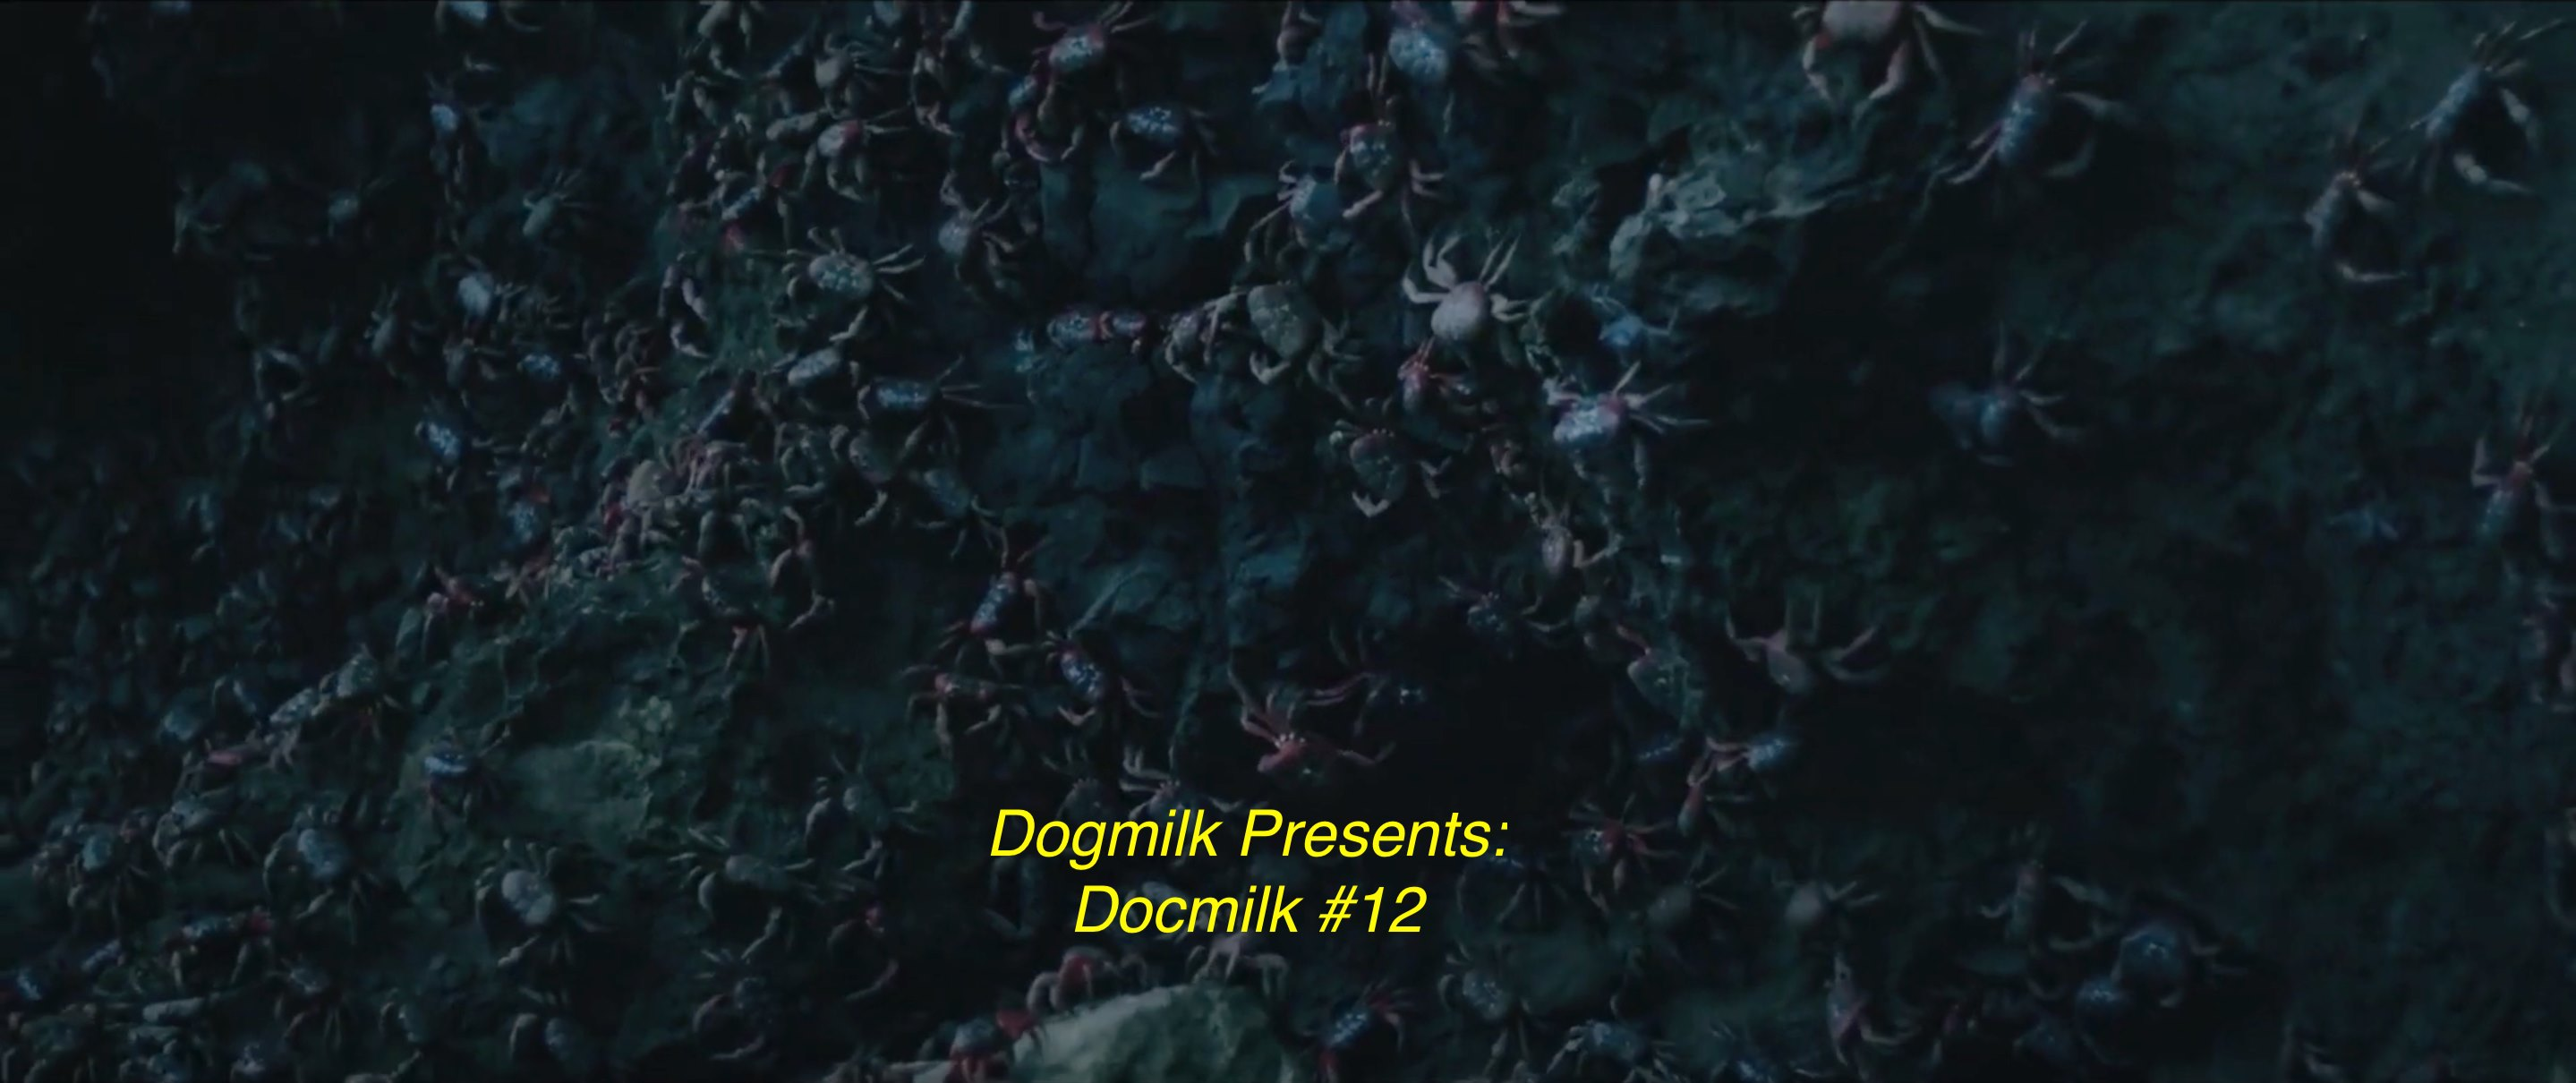 Dogmilk Presents Docmilk #12: Island of the Hungry Ghosts